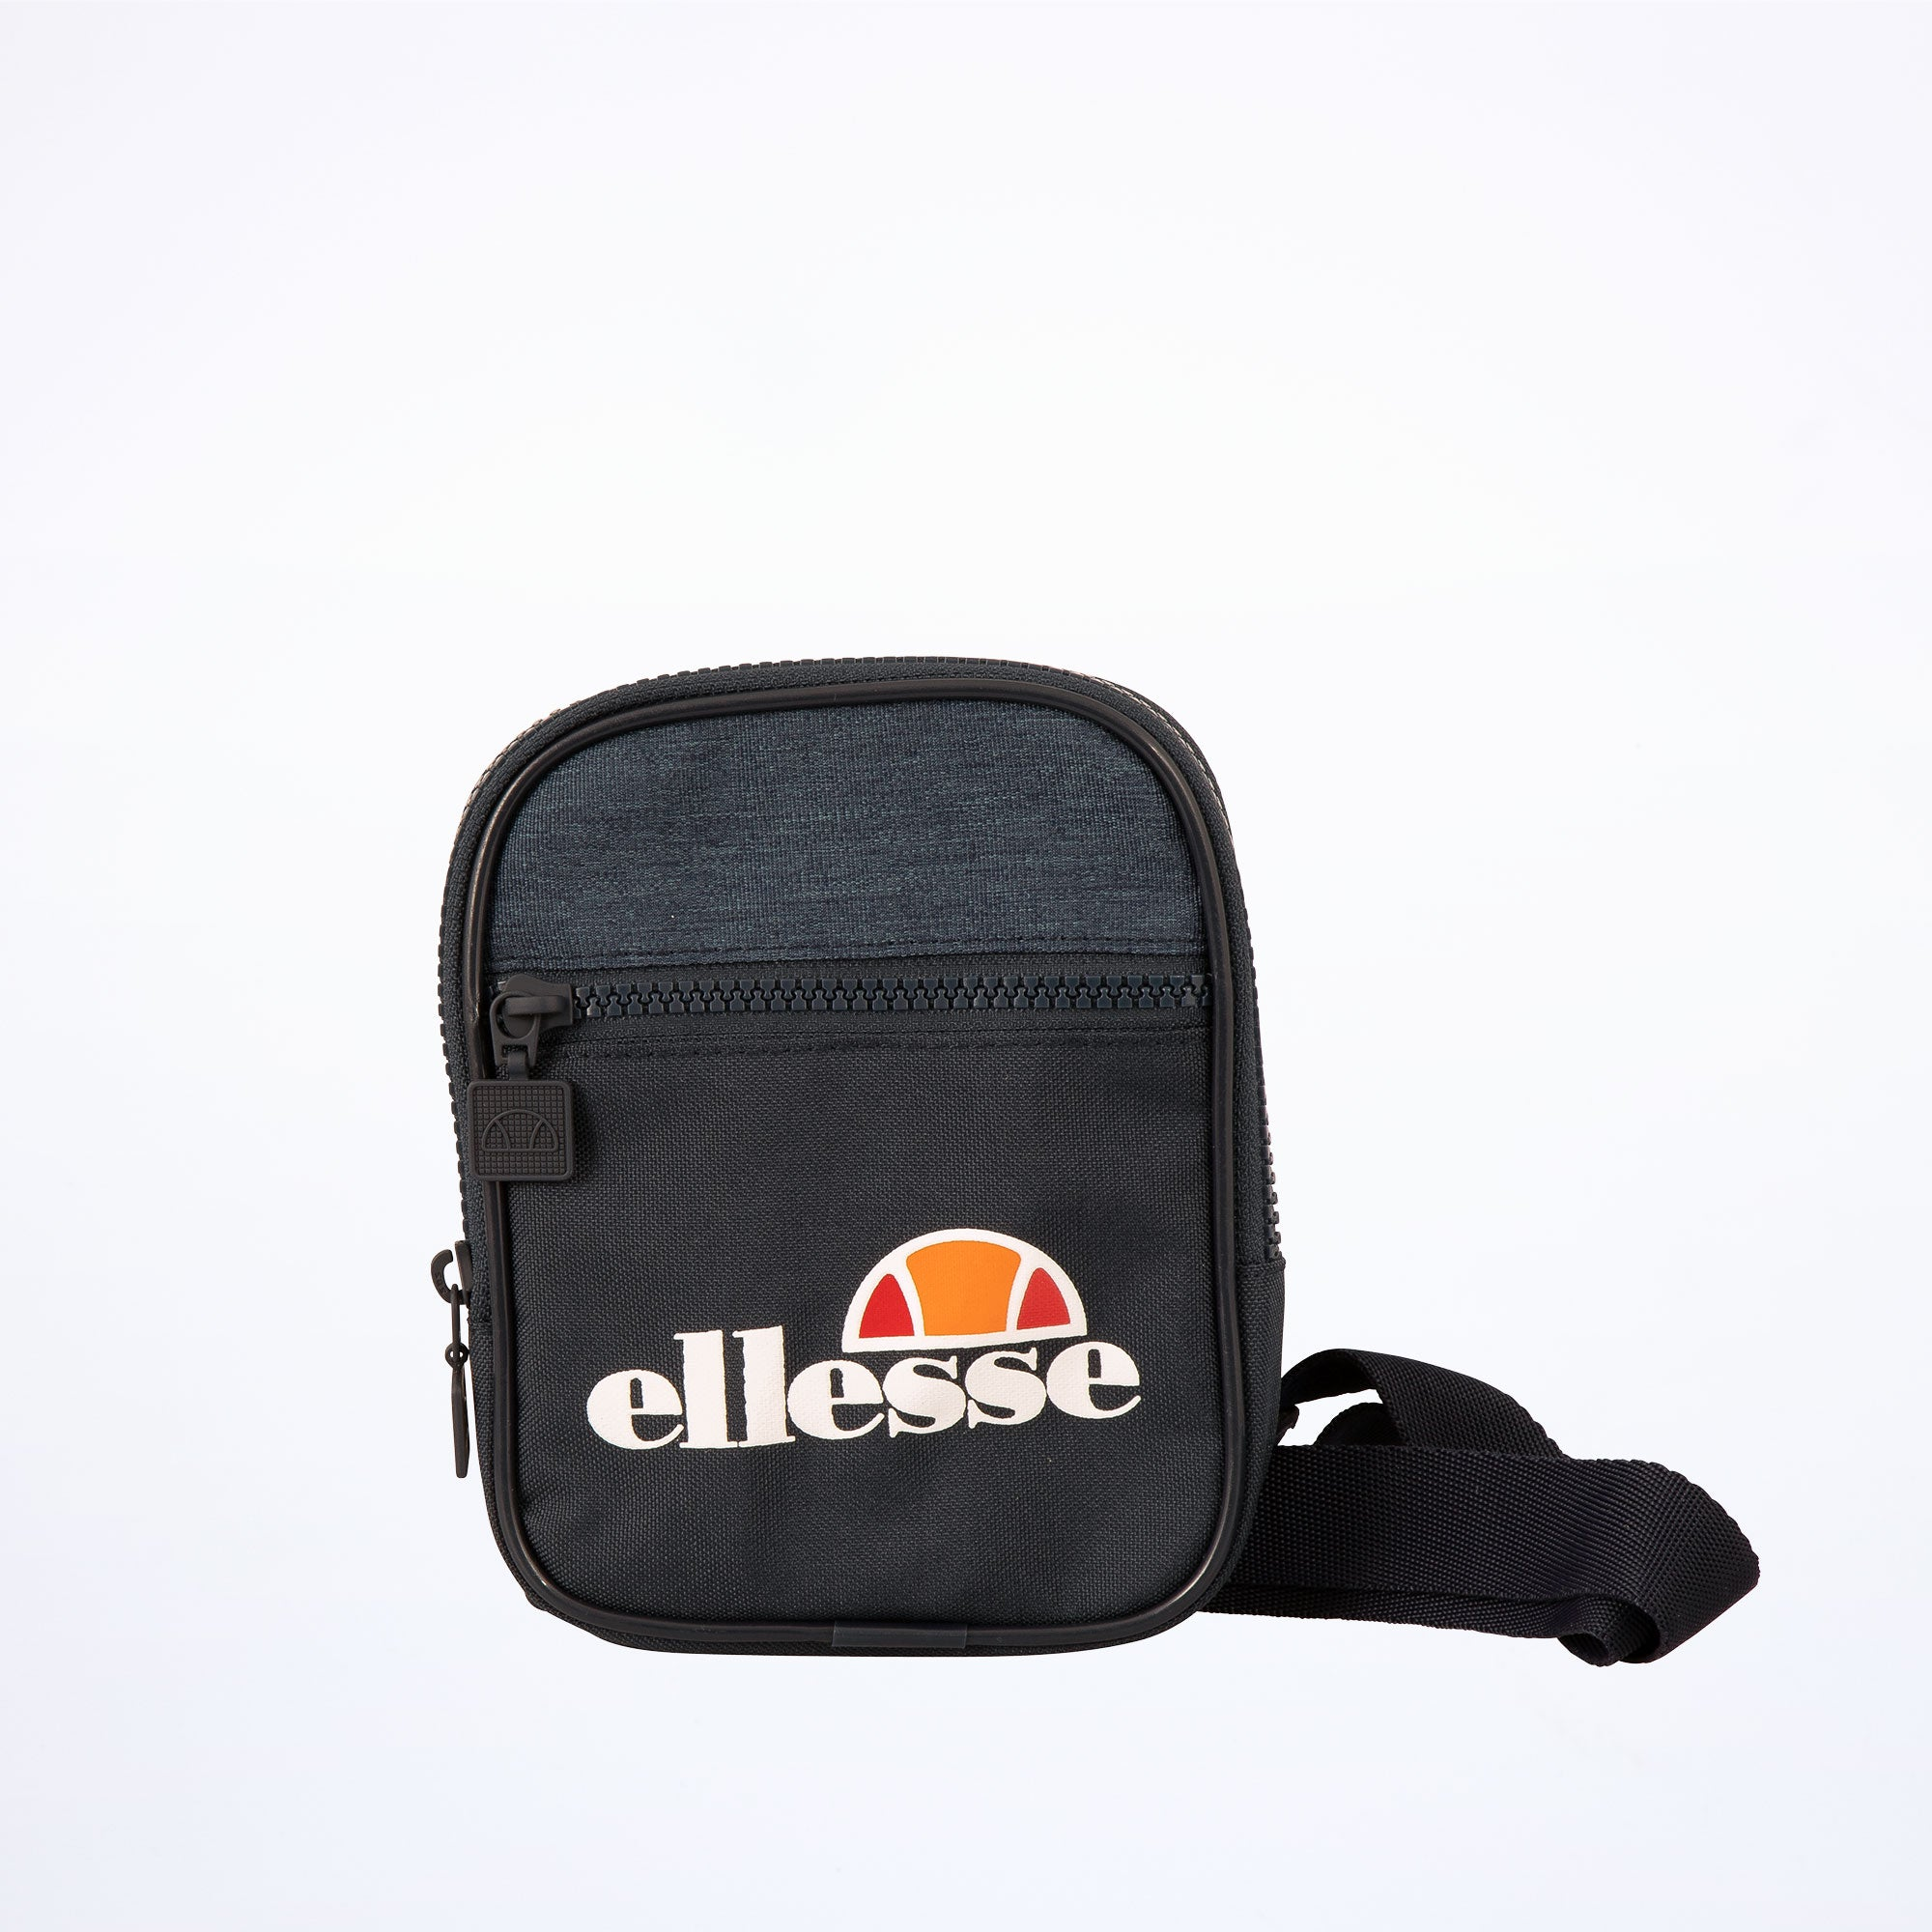 ellesse Tempelton Small Bag navy